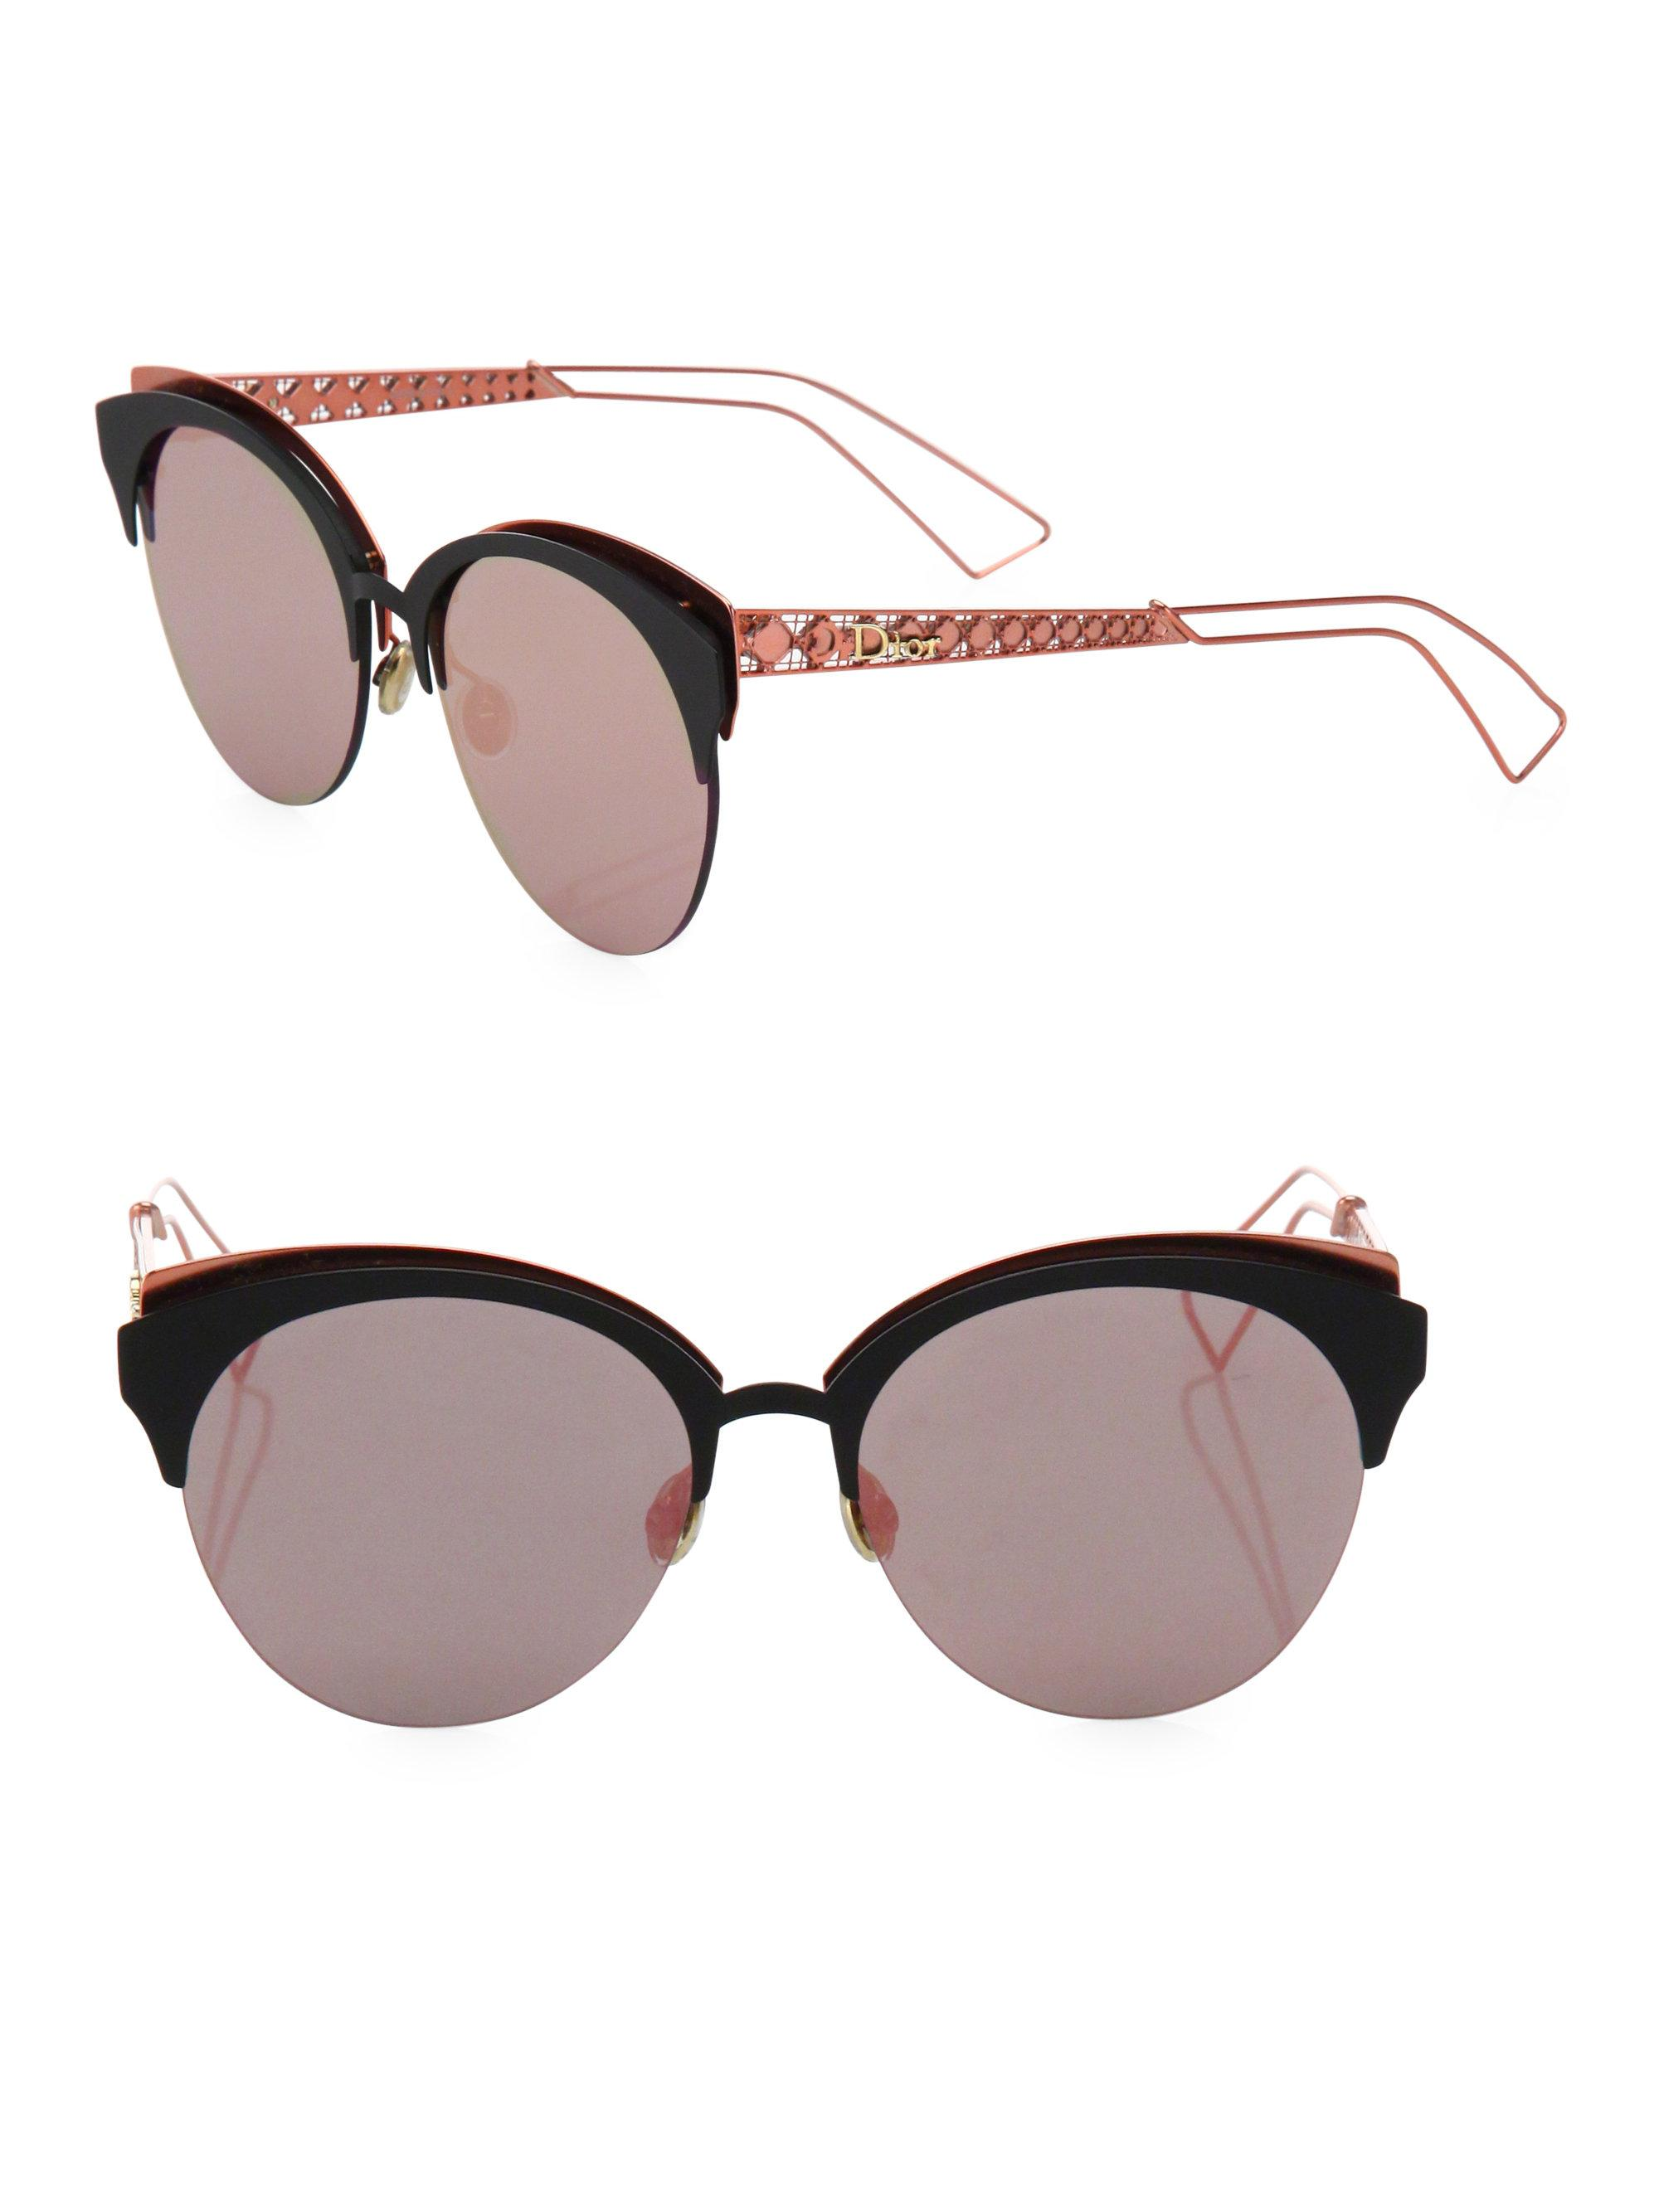 754c7a9460b56 Lyst - Dior Ama 55mm Rounded Clubmaster Sunglasses in Pink